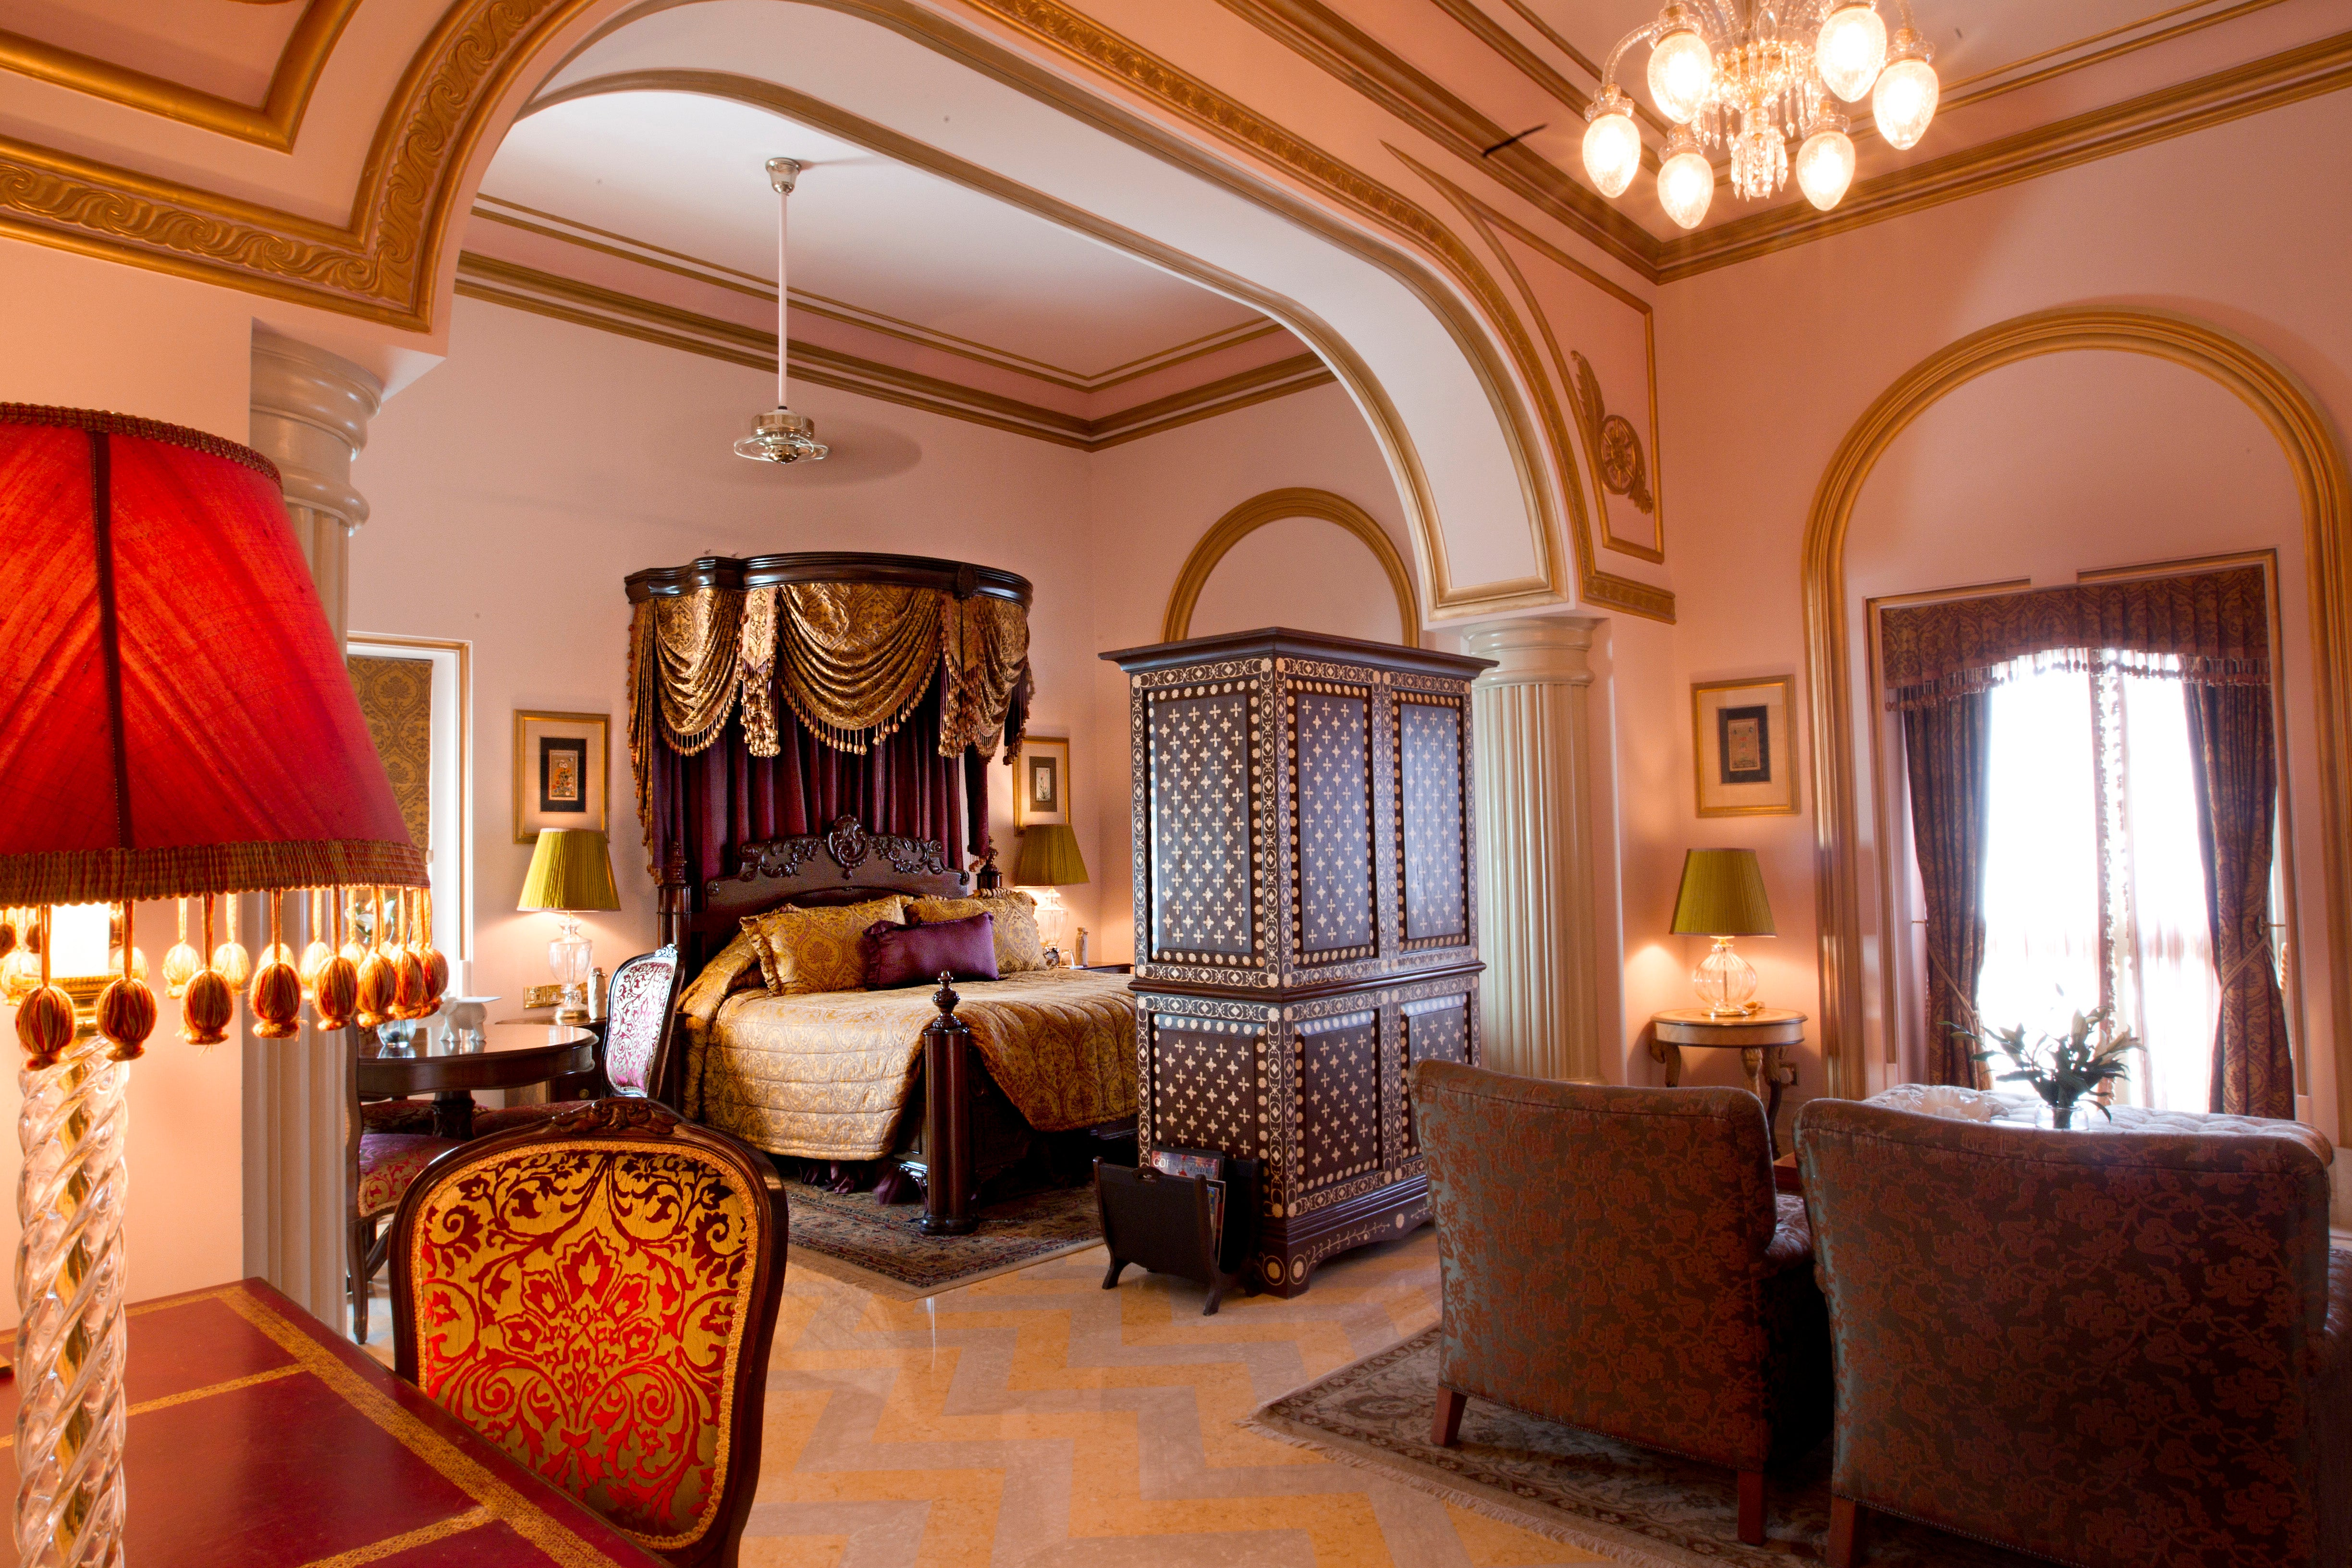 Udaipur City of Lakes Pictures Information India Travel Taj lake palace pictures